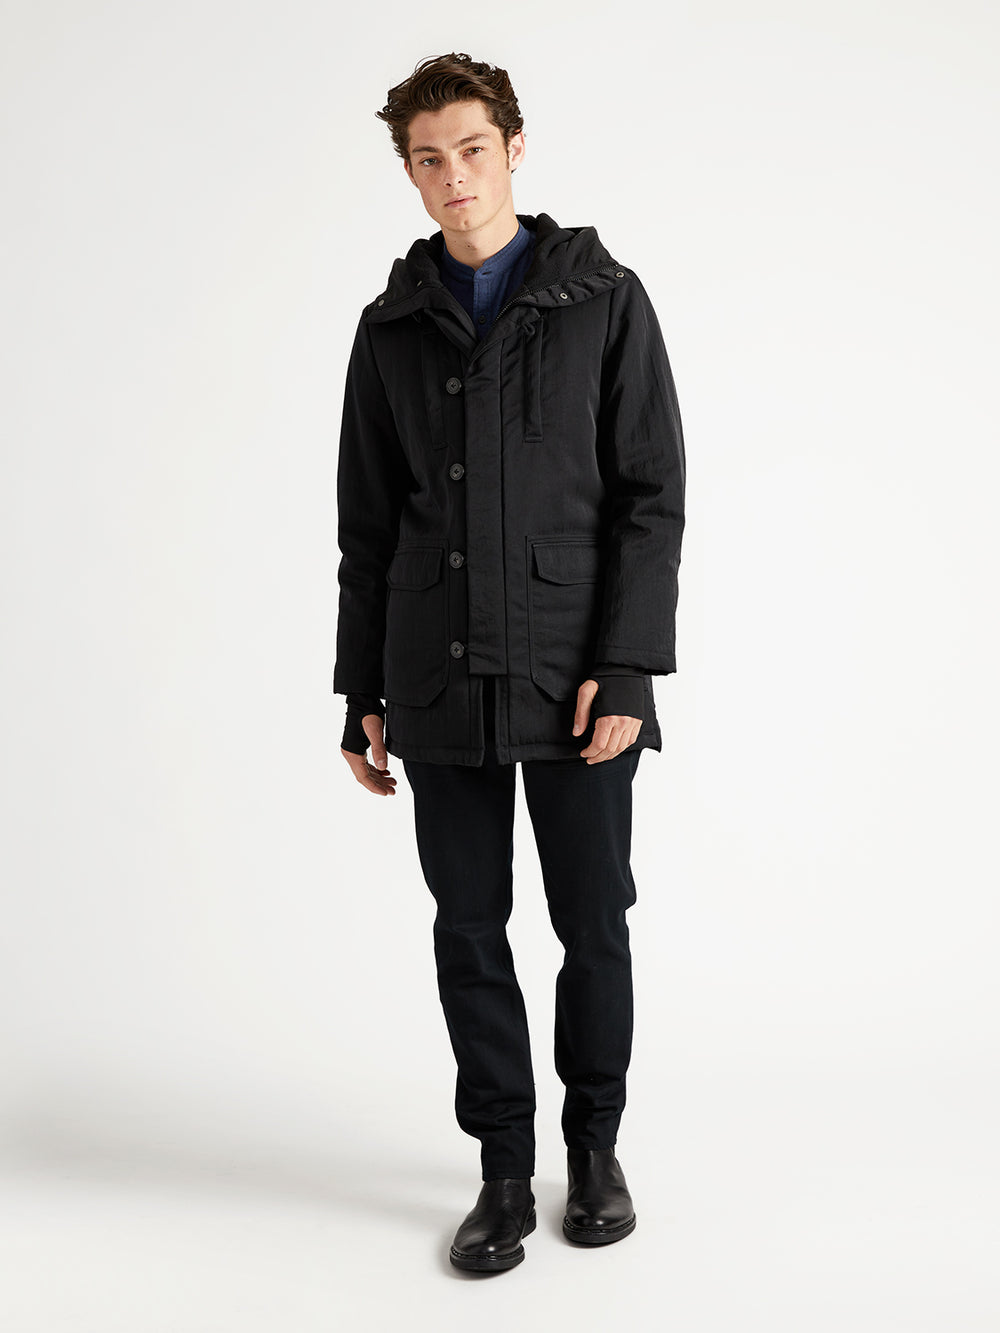 THE EVEREST PARKA